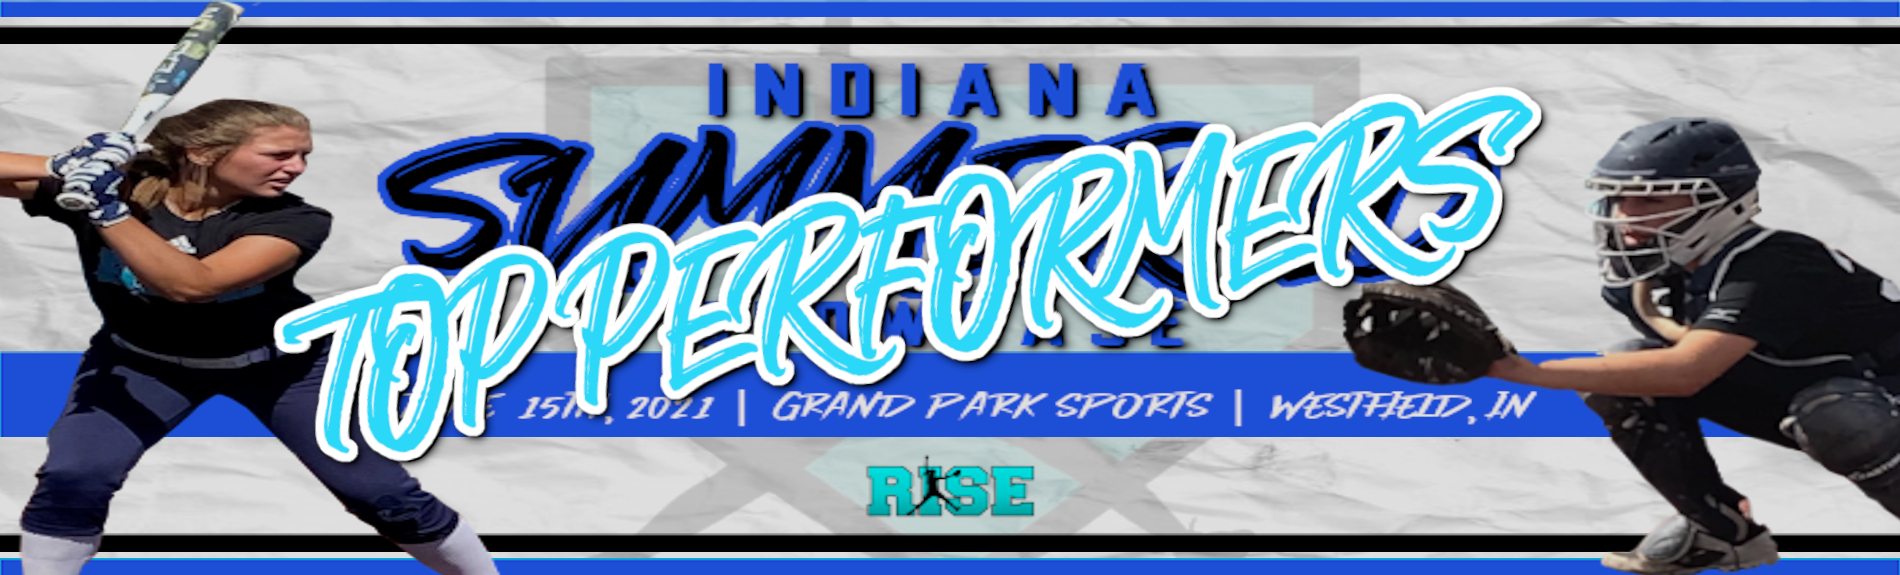 """Indiana Summer ID Showcase """"TOP PERFORMERS"""""""